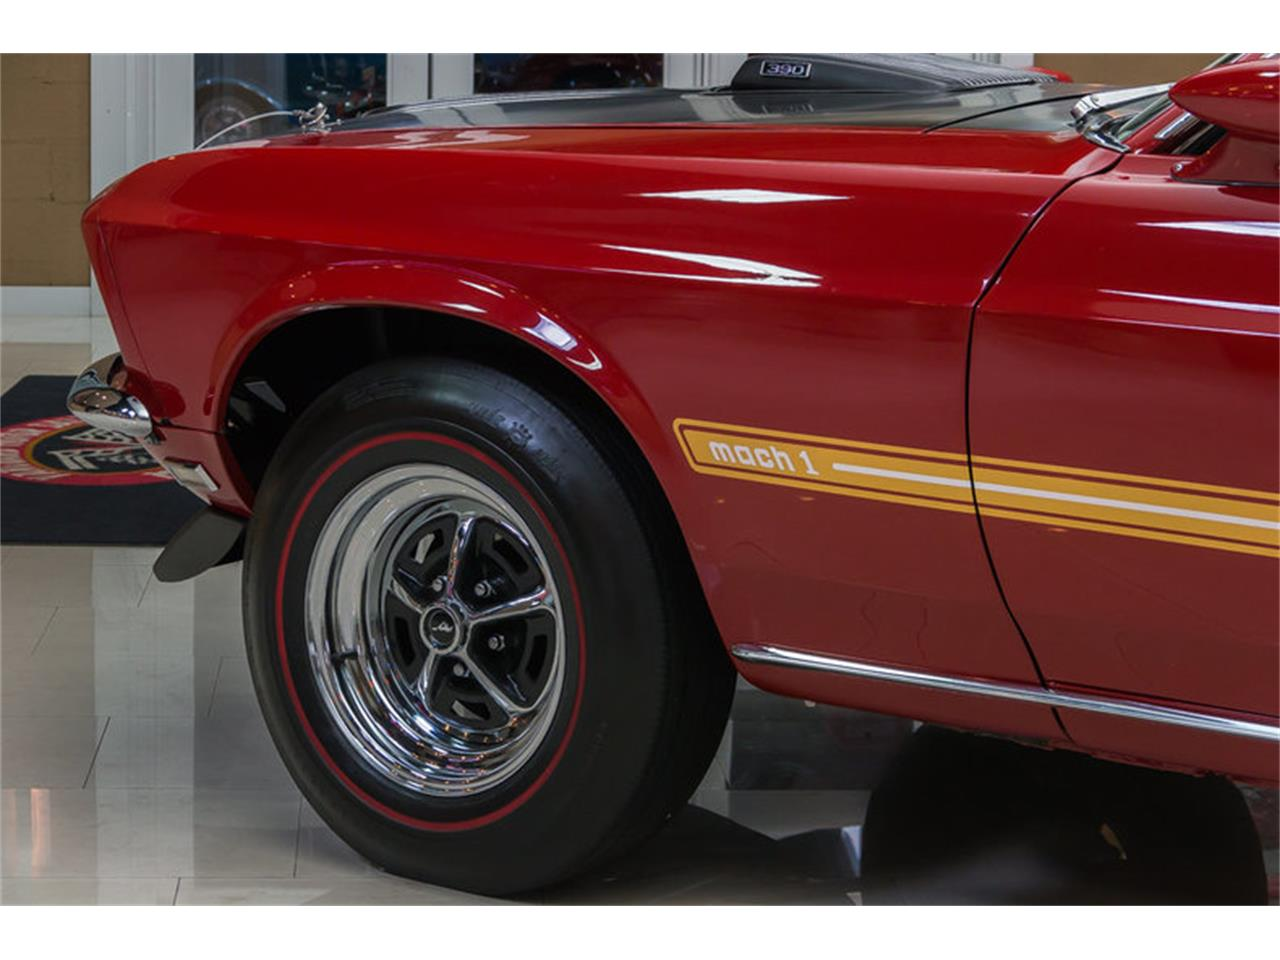 Large Picture of Classic 1969 Ford Mustang Mach 1 S Code located in Plymouth Michigan - $59,900.00 Offered by Vanguard Motor Sales - IS3G